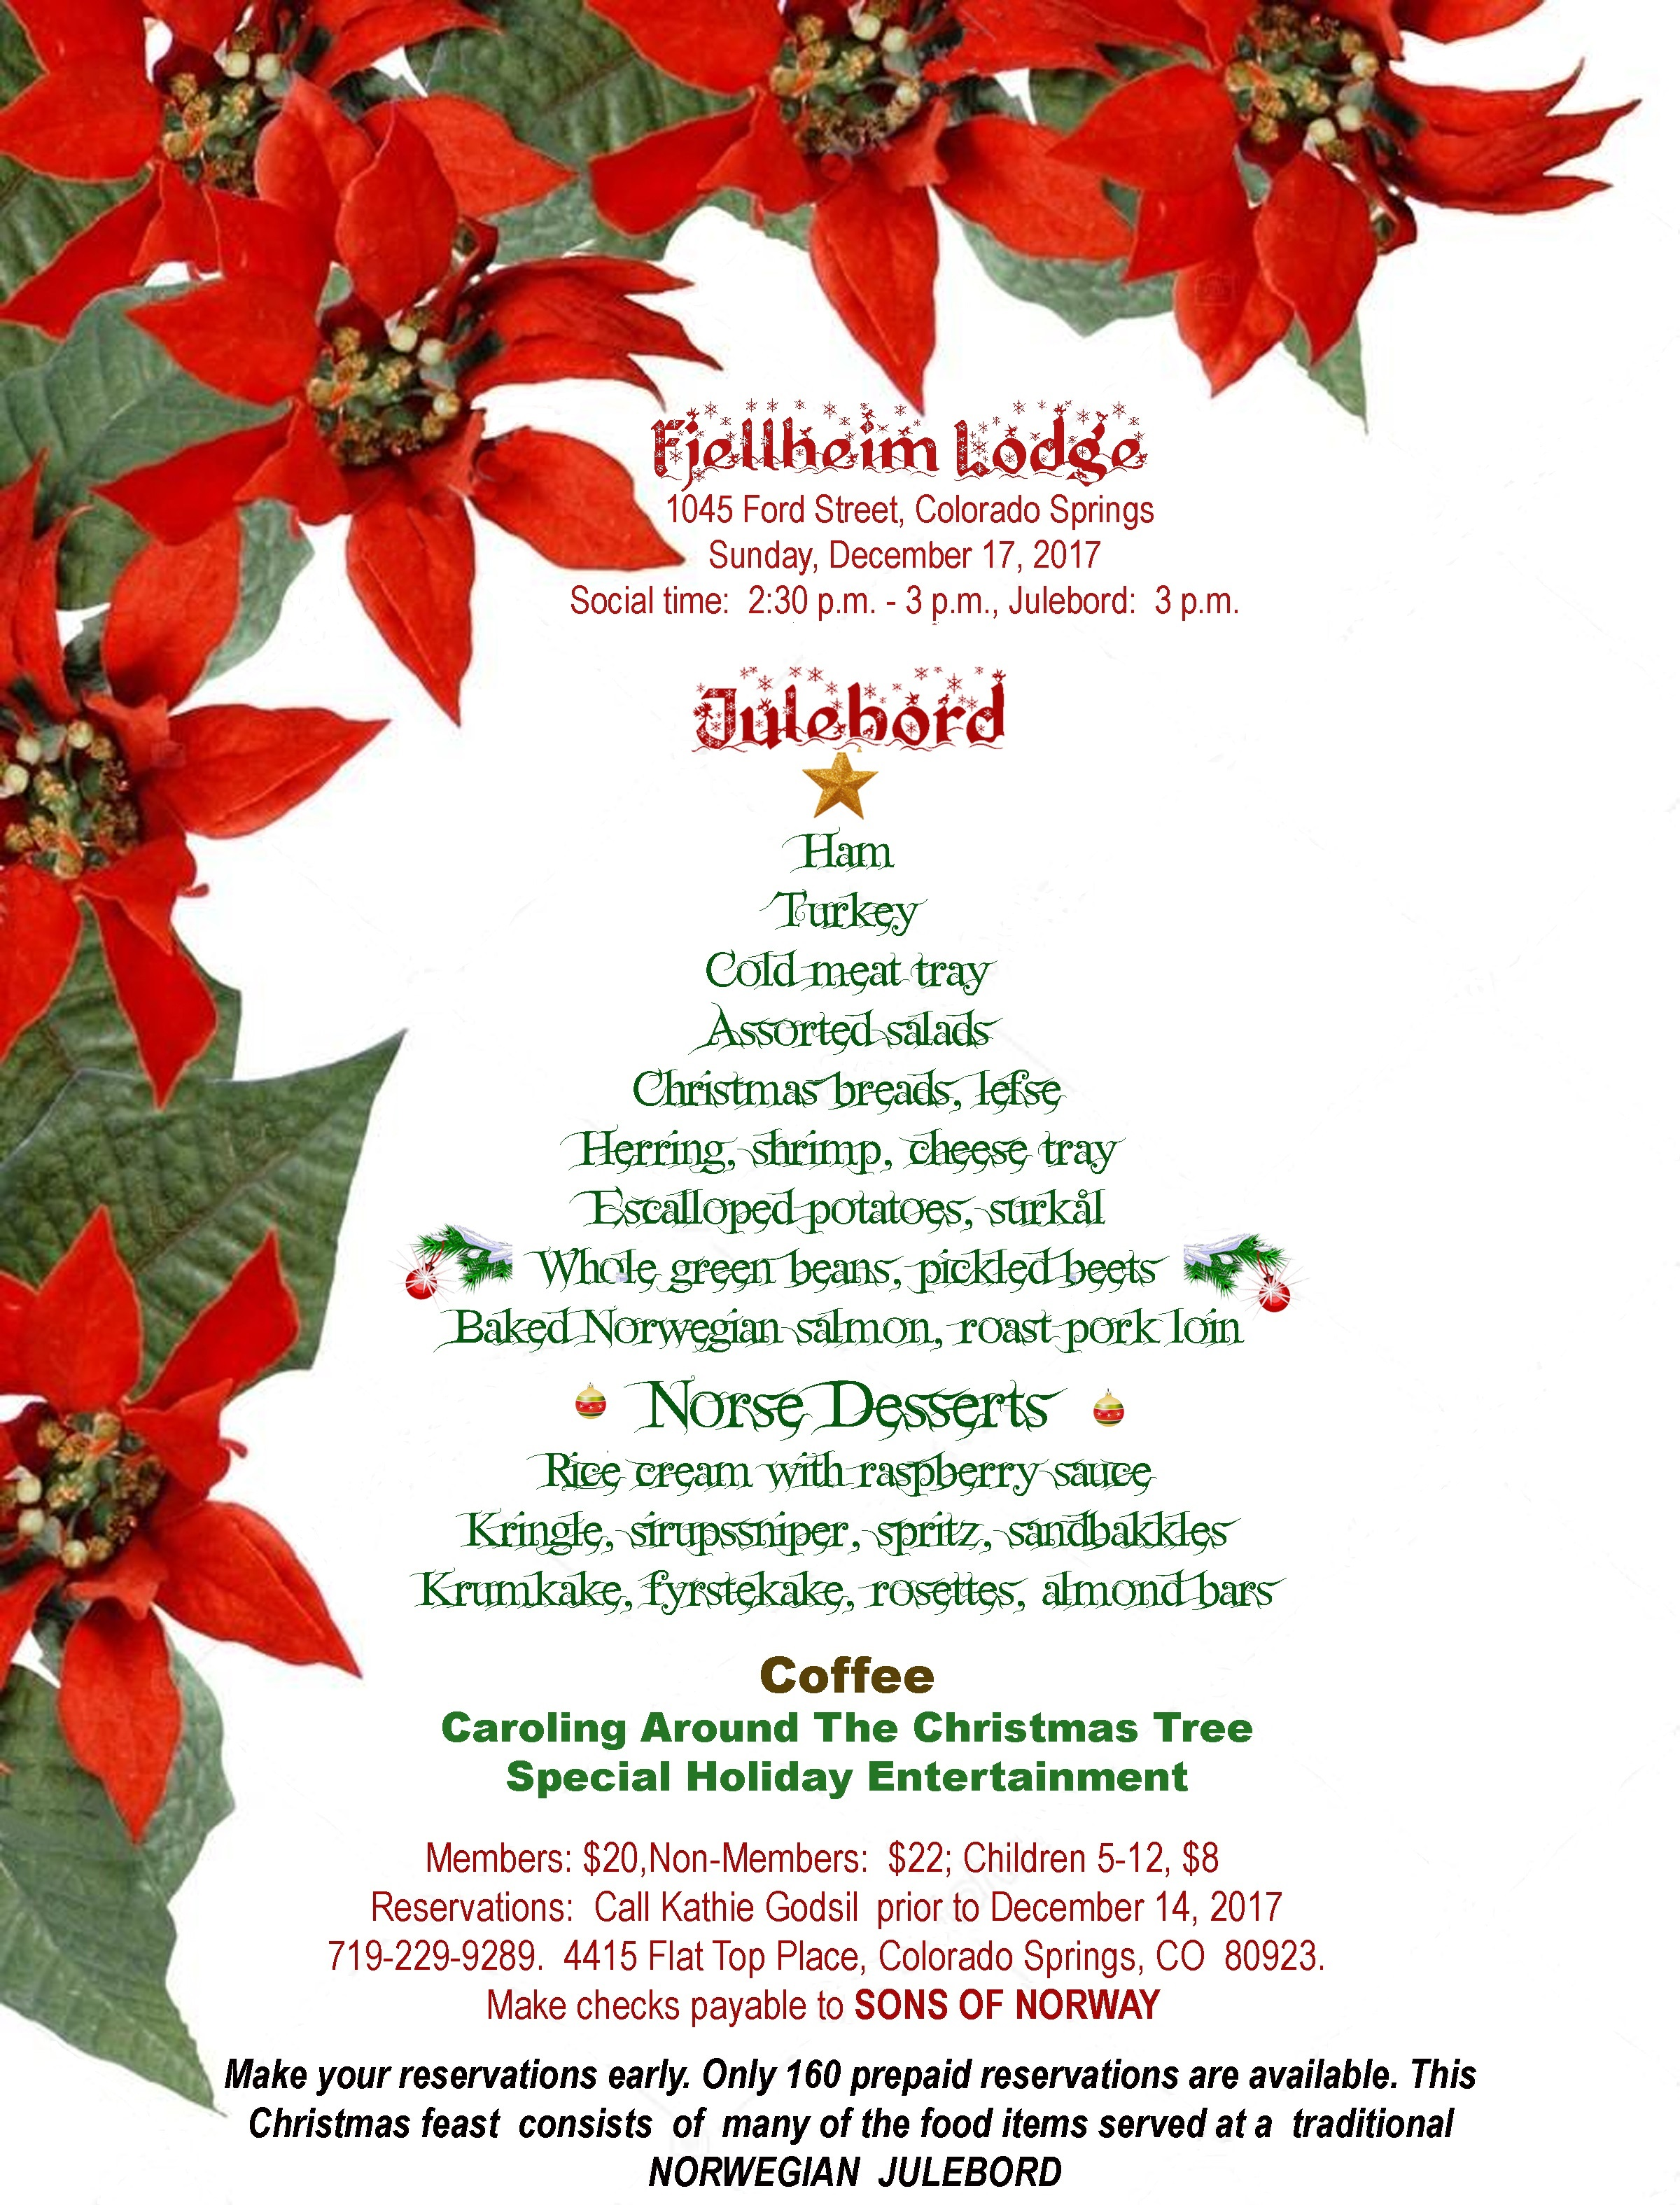 Julebord - A Norwegian Christmas Feast presented by Fjellheim Lodge ...